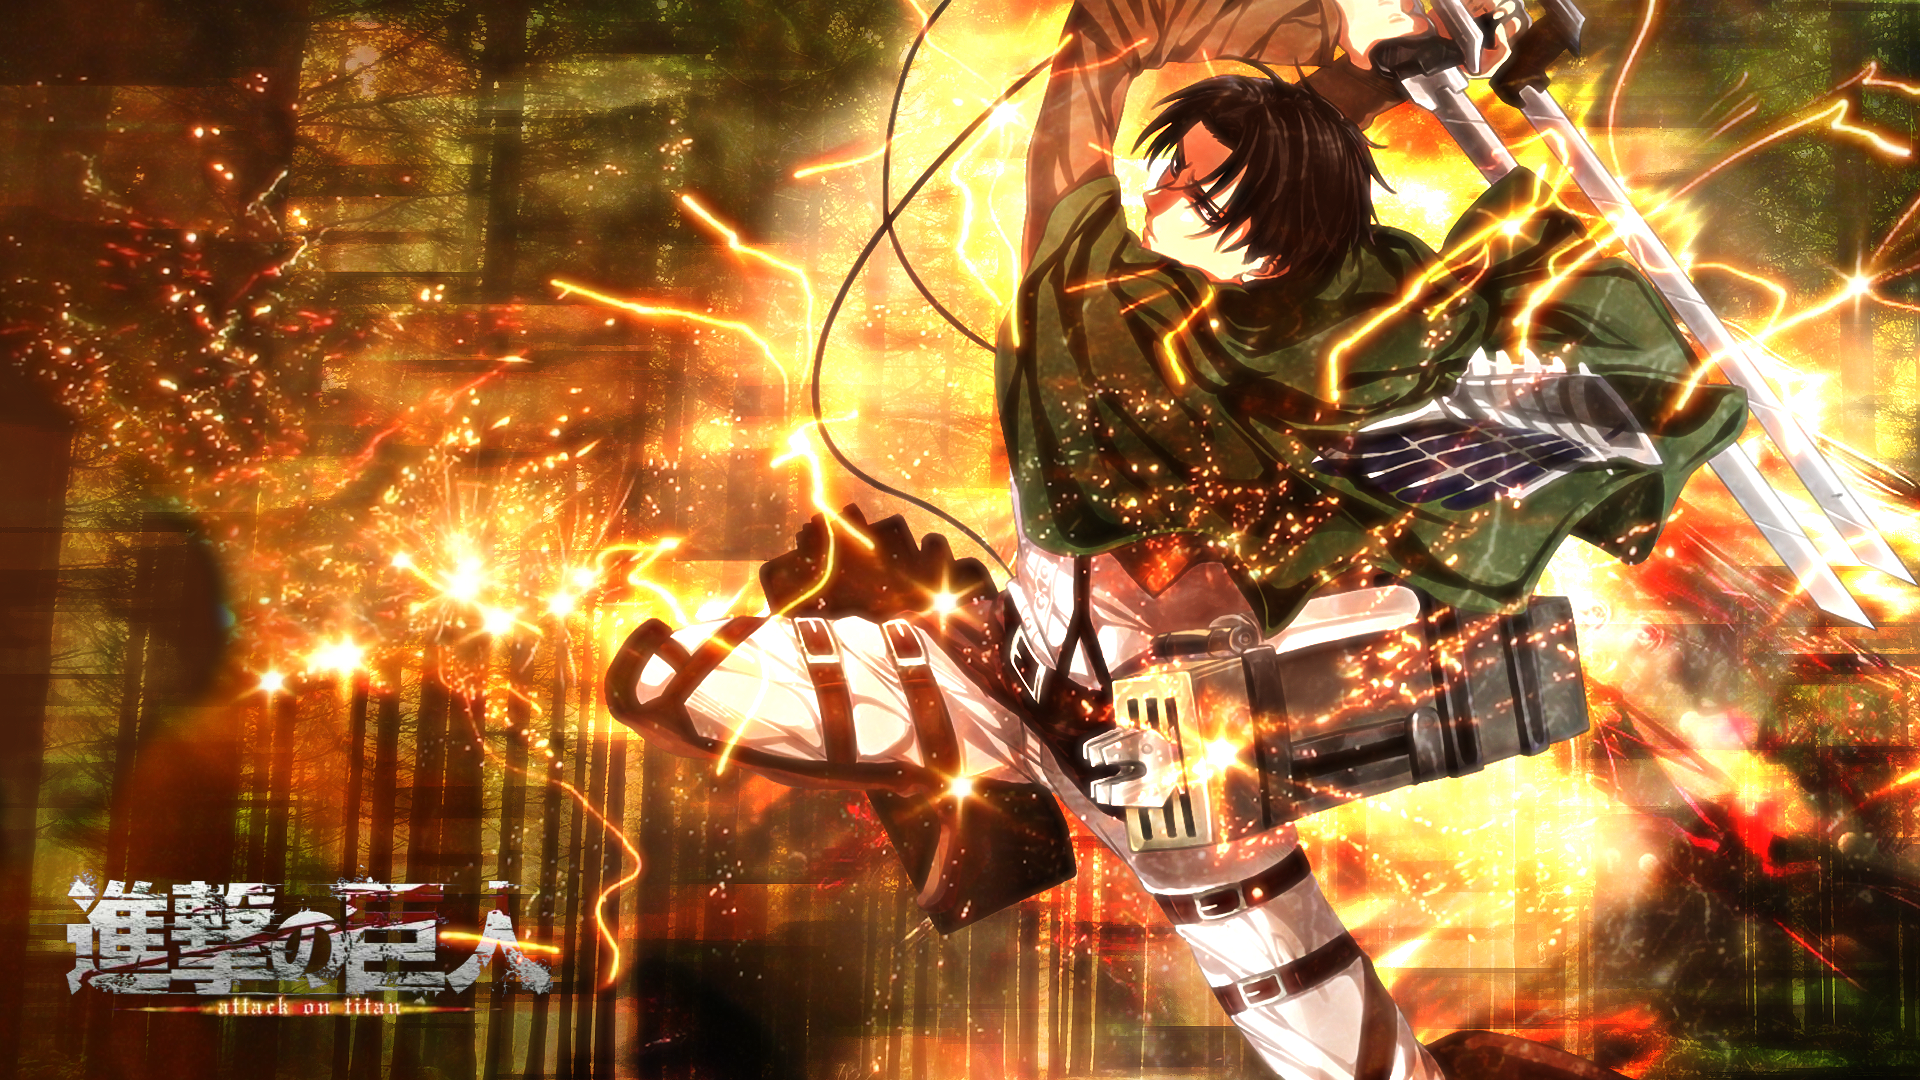 Levi Ackerman Hd Wallpaper Background Image 1920x1080 Id 669414 Wallpaper Abyss